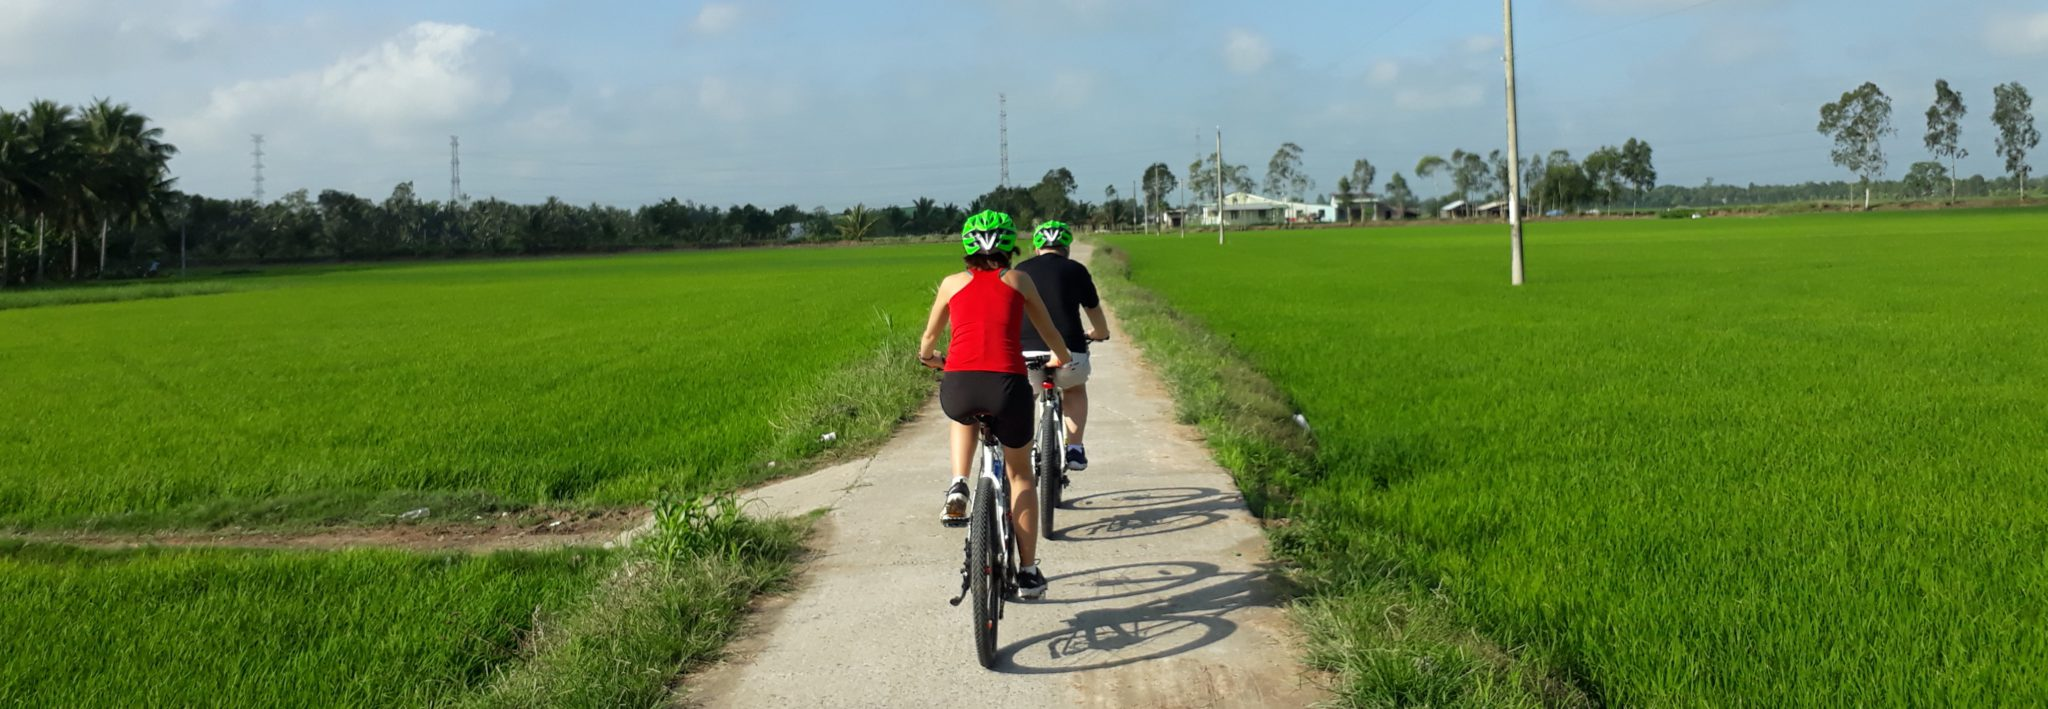 8 day Mekong multi activity holiday in Vietnam: Kayak and cycle